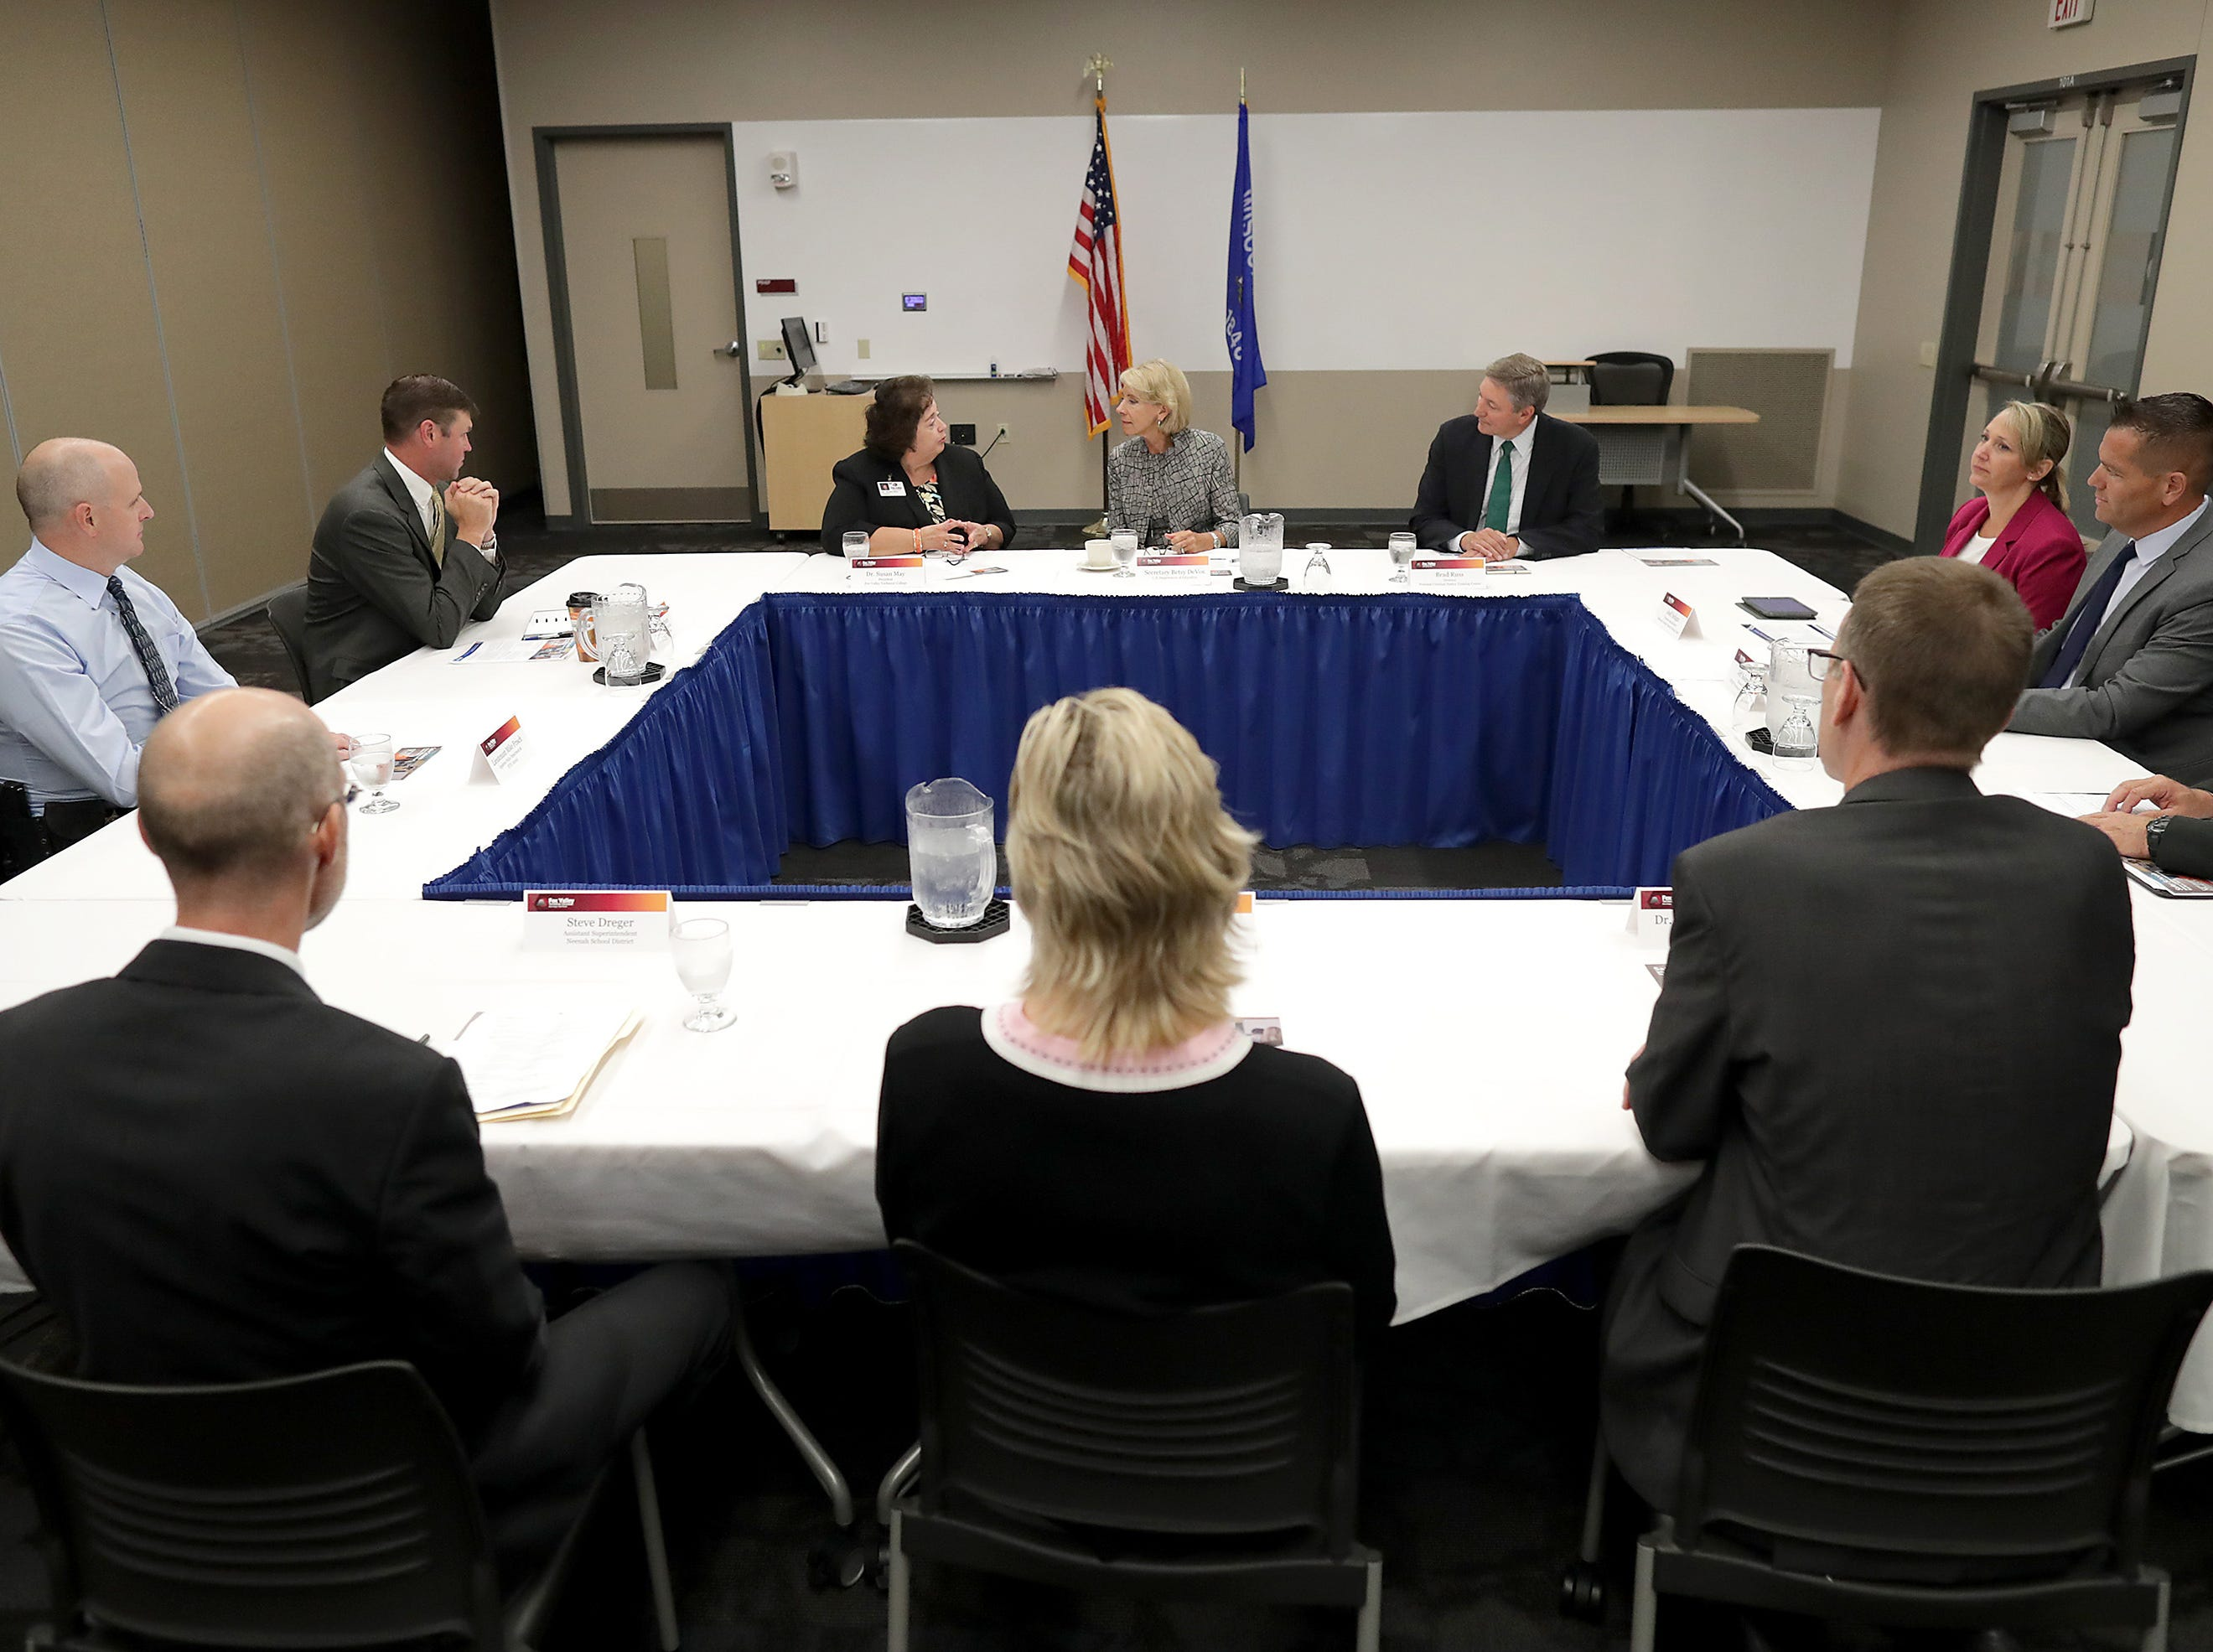 U.S. Secretary of Education Betsy DeVos during roundtable with Fox Valley Technical College leadership, Criminal Justice Training Center staff, local superintendents and local school resource officers at Fox Valley Technical CollegeÕs Public Safety Training Center on Tuesday, July 24, 2018 in Greenville, Wis. Wm. Glasheen/USA TODAY NETWORK-Wisconsin